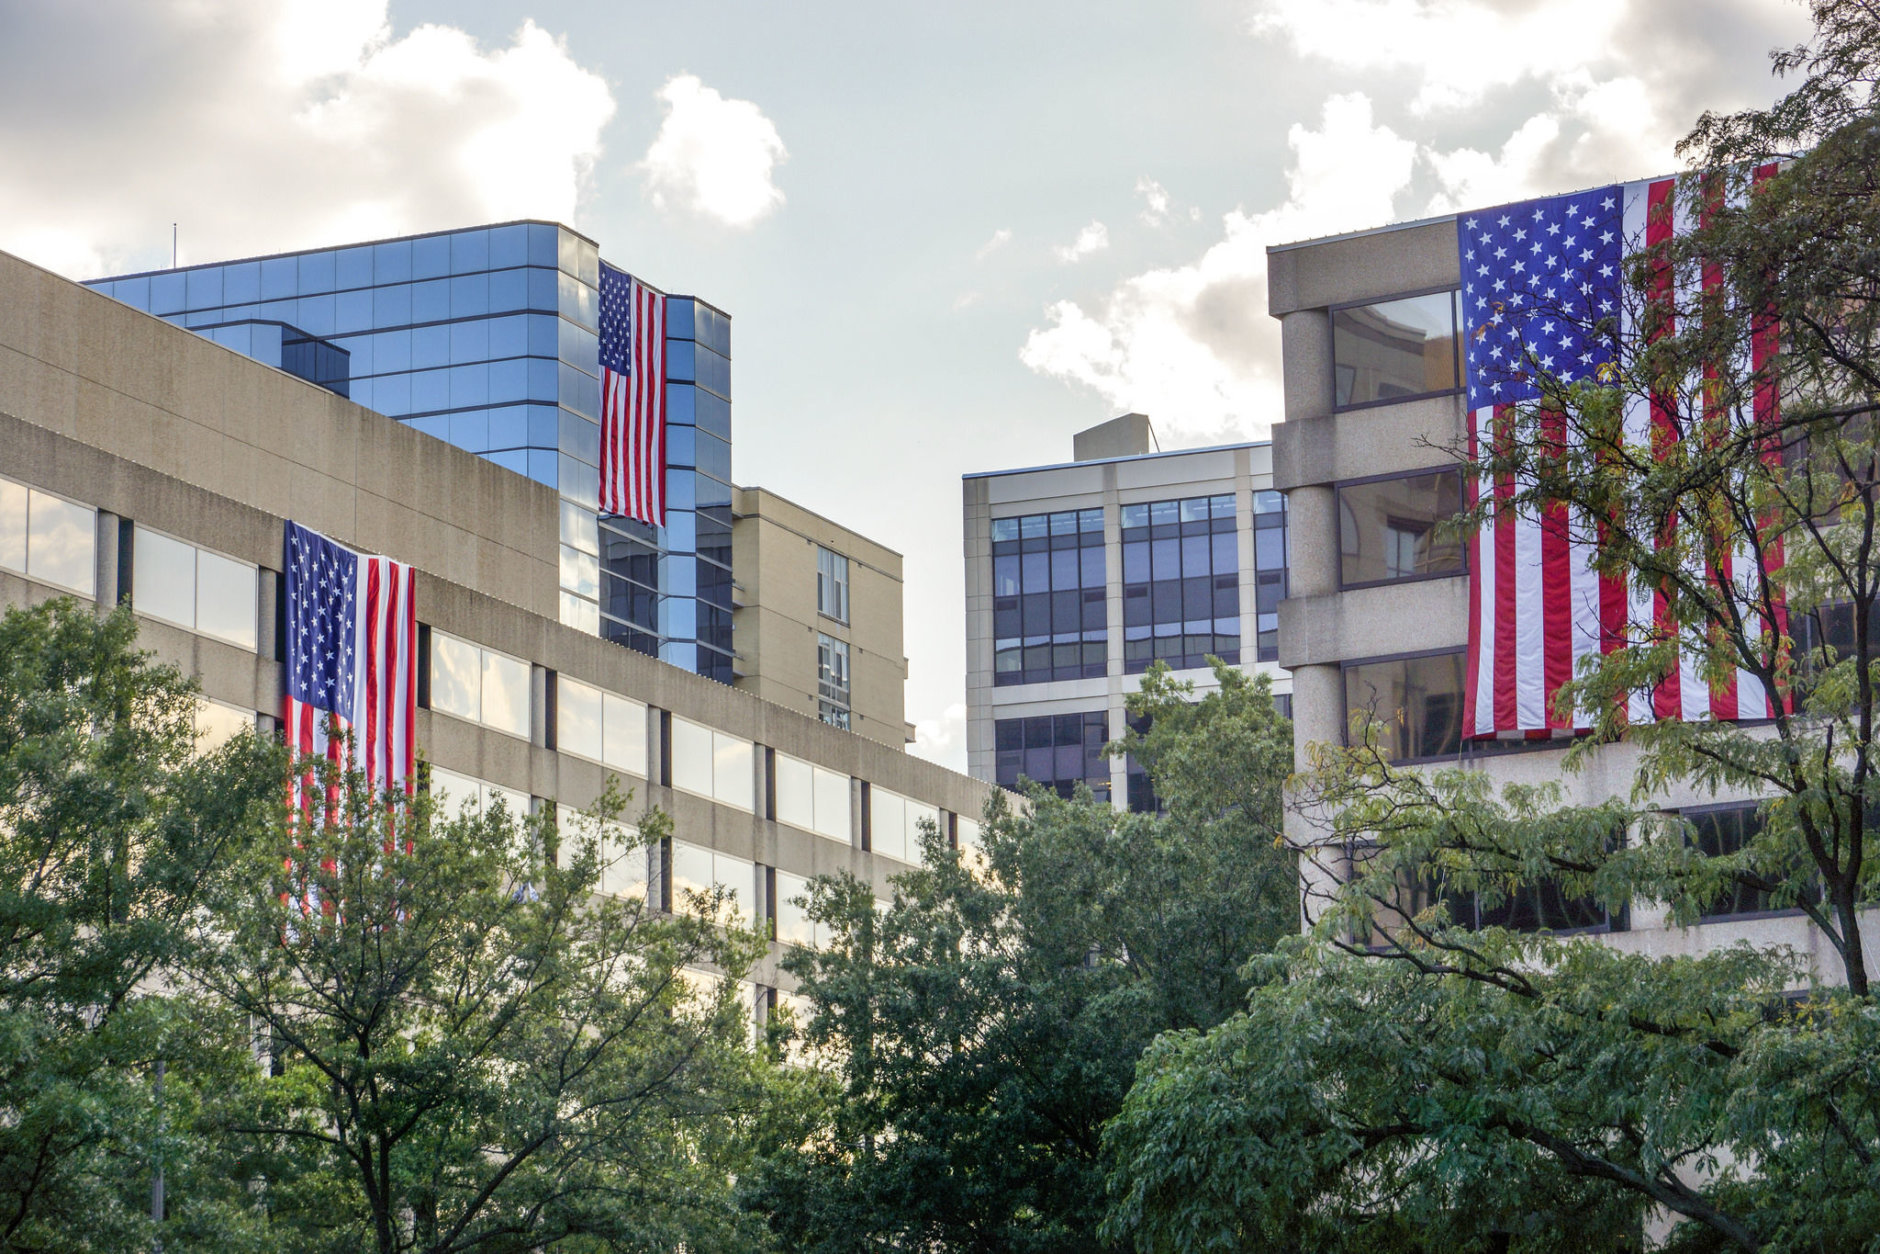 This year, 29 buildings are taking part in the Flags Across Rosslyn event. (Courtesy Rosslyn Business Improvement District)